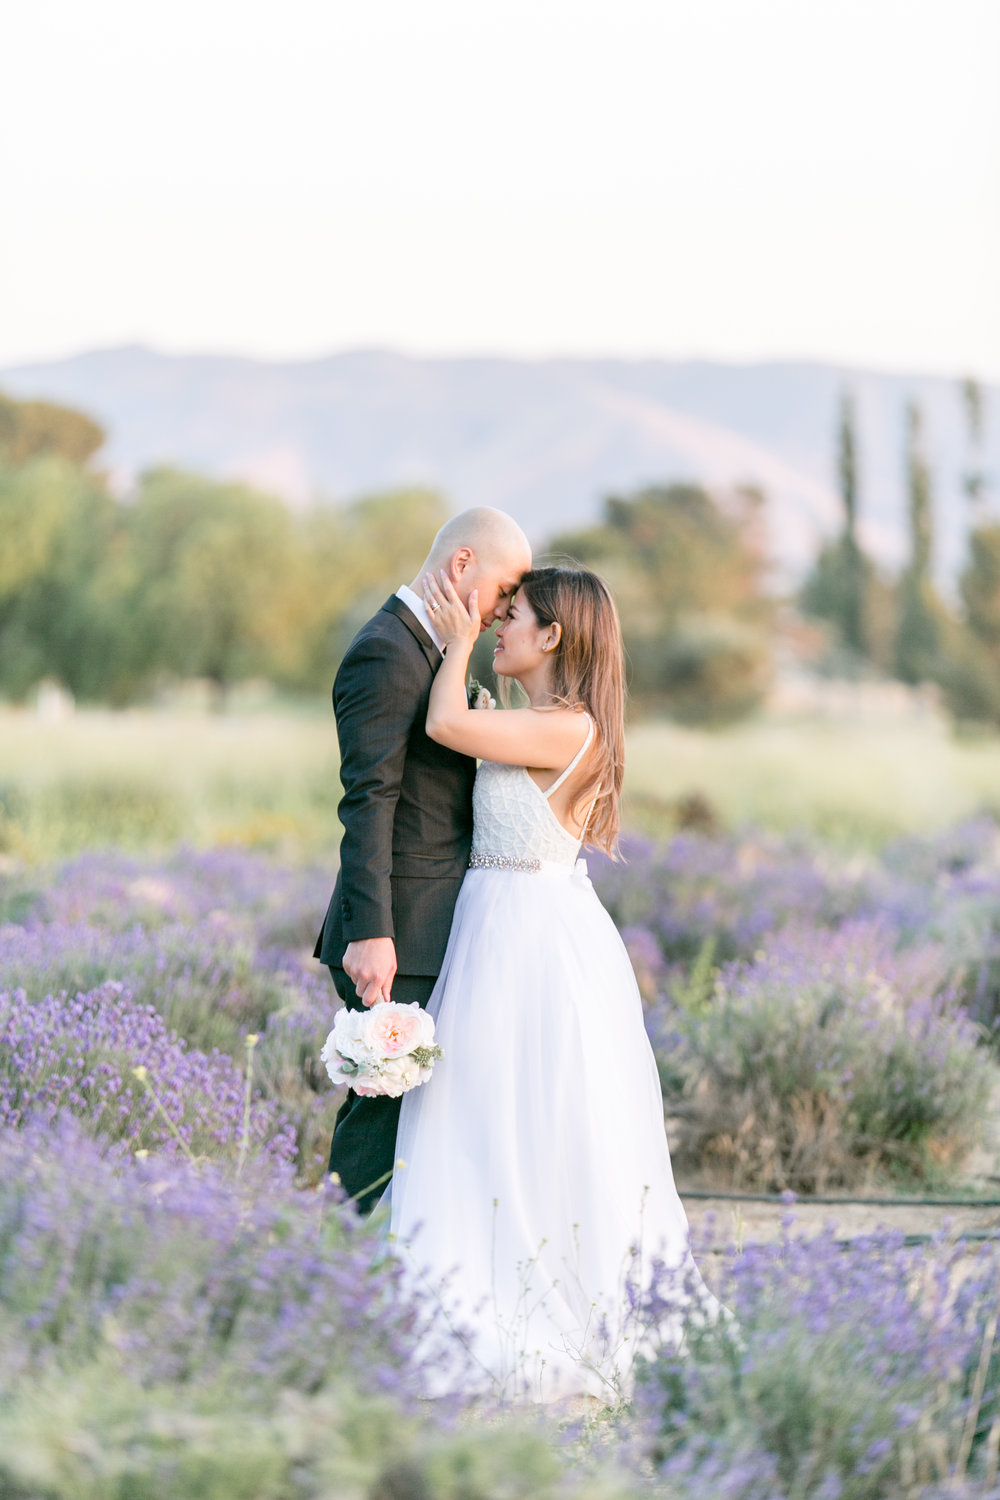 Brig + Kevin wedding - Highland Springs Ranch - lavendar farm - southern california - first look and couples portraits-0087.JPG